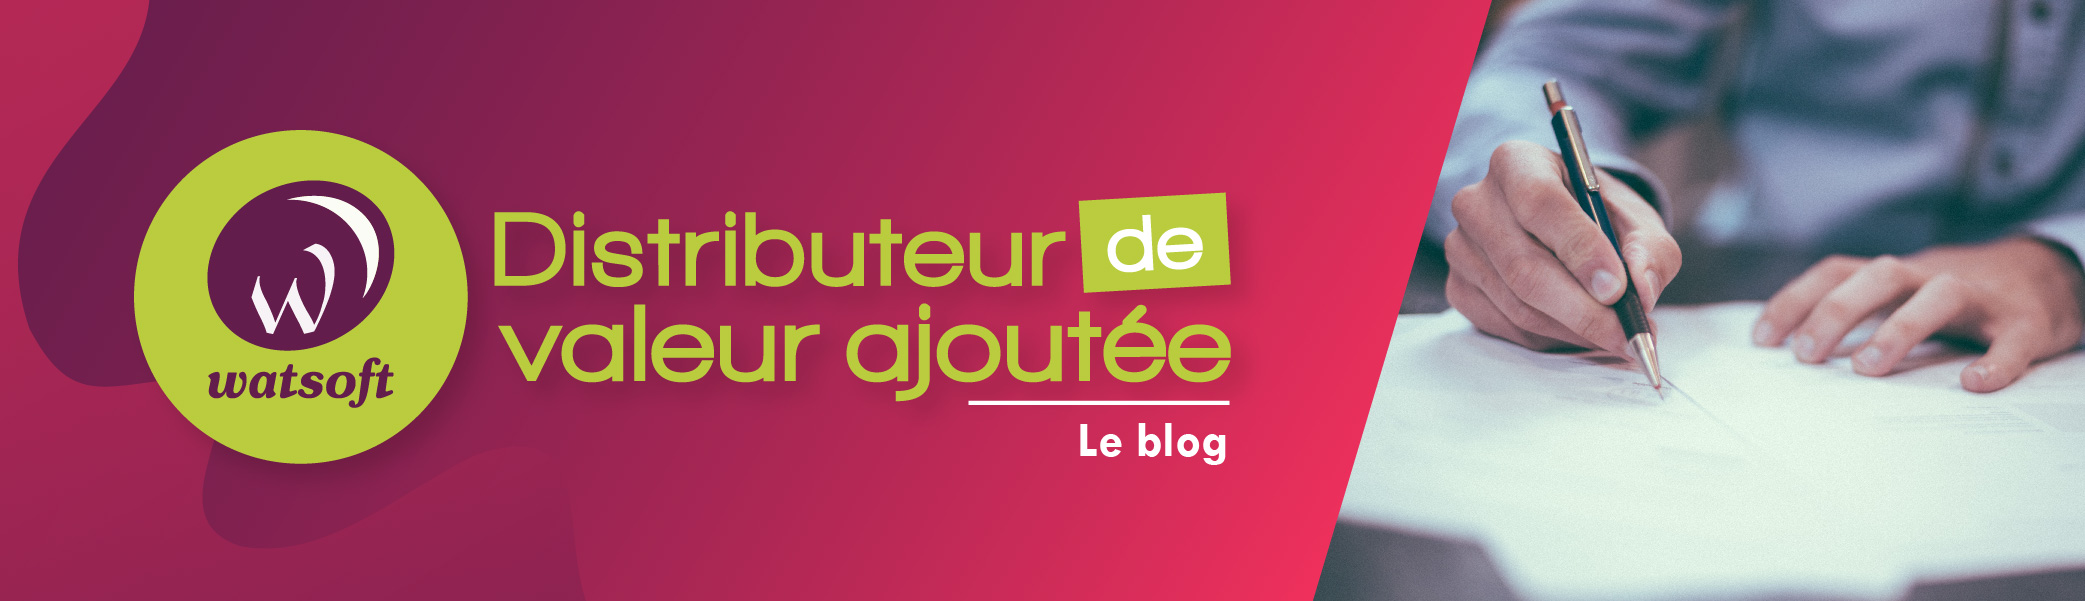 Le blog de Watsoft